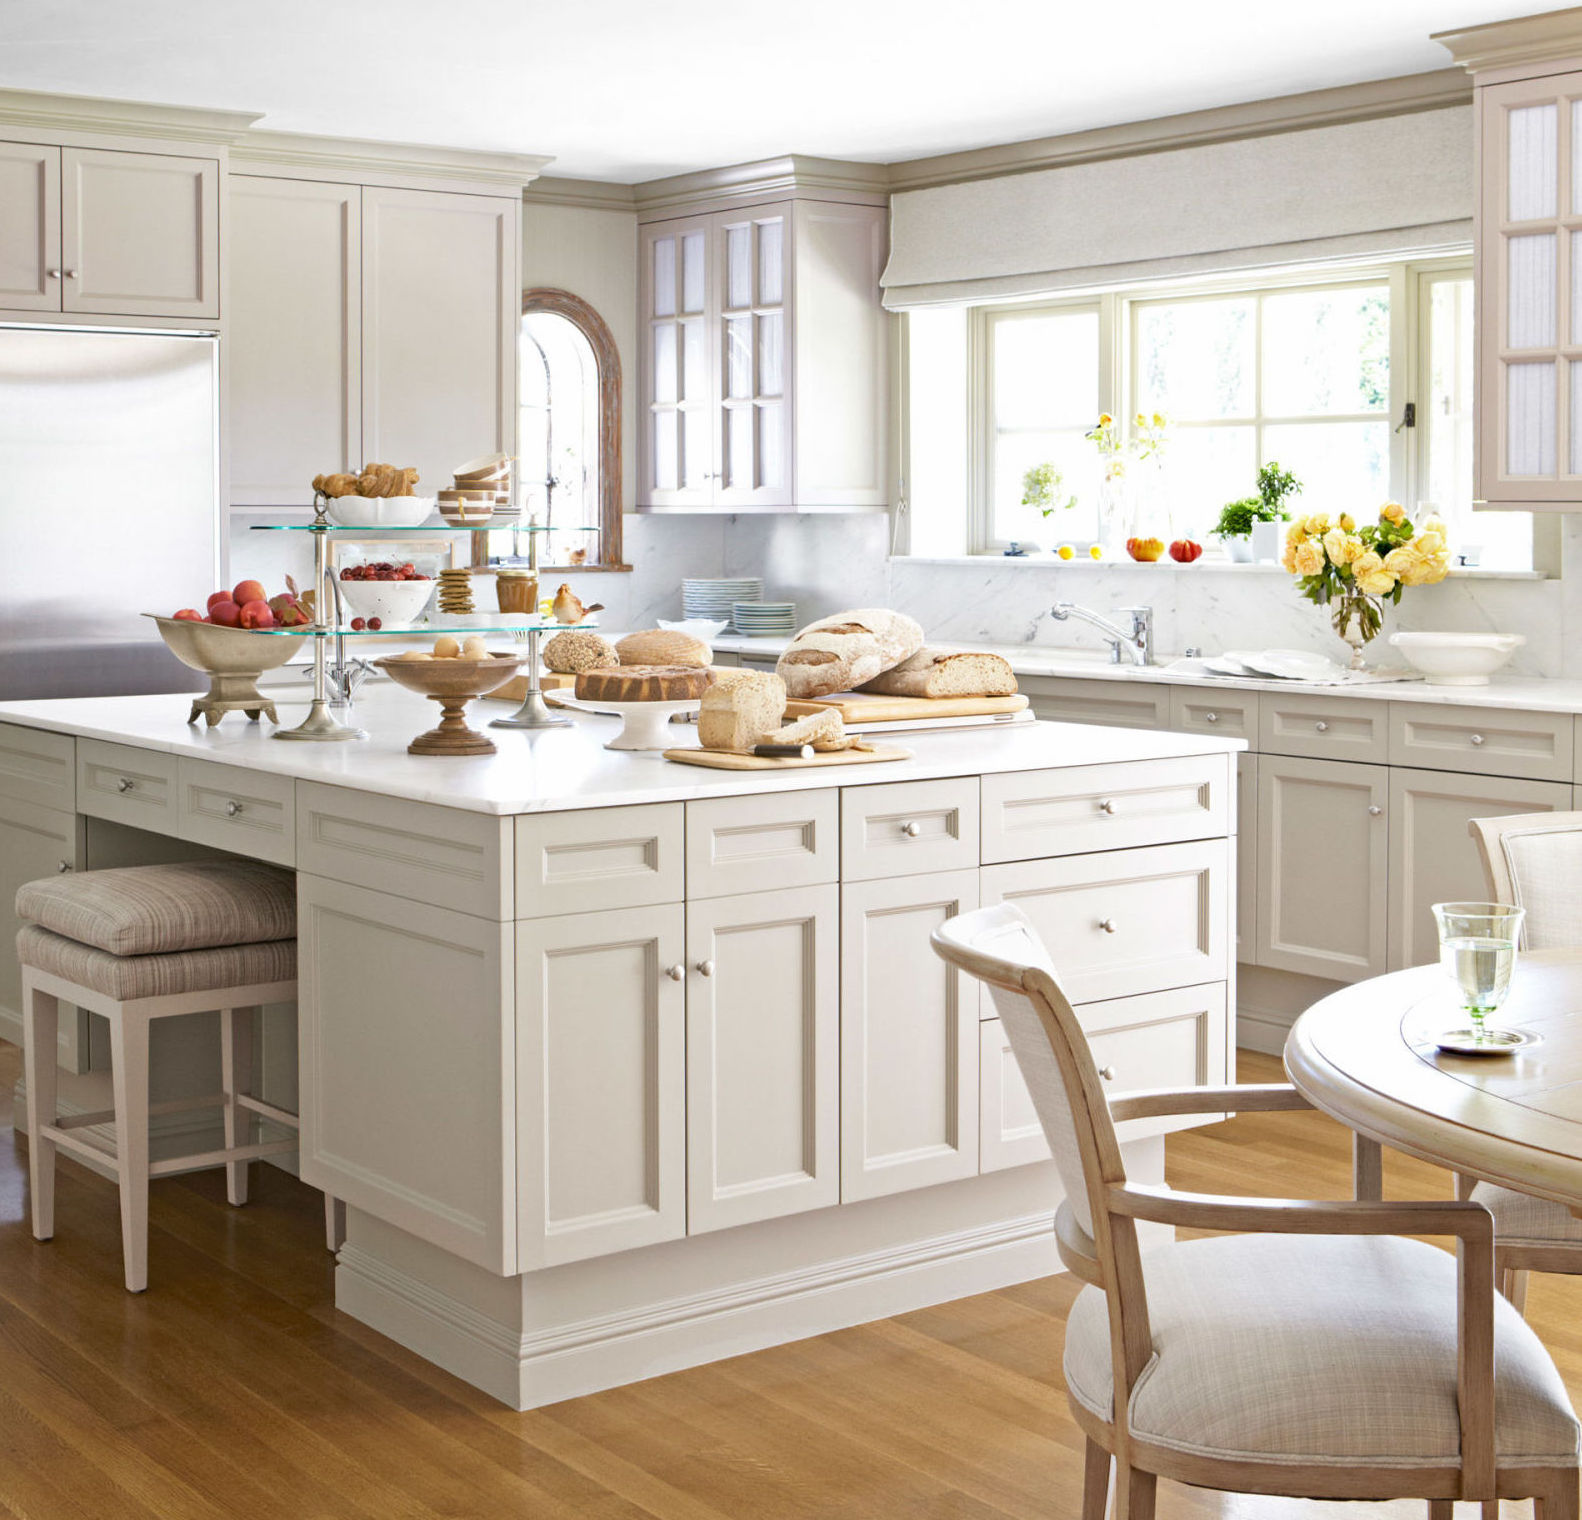 Pale Neutral Kitchens - Atticmag